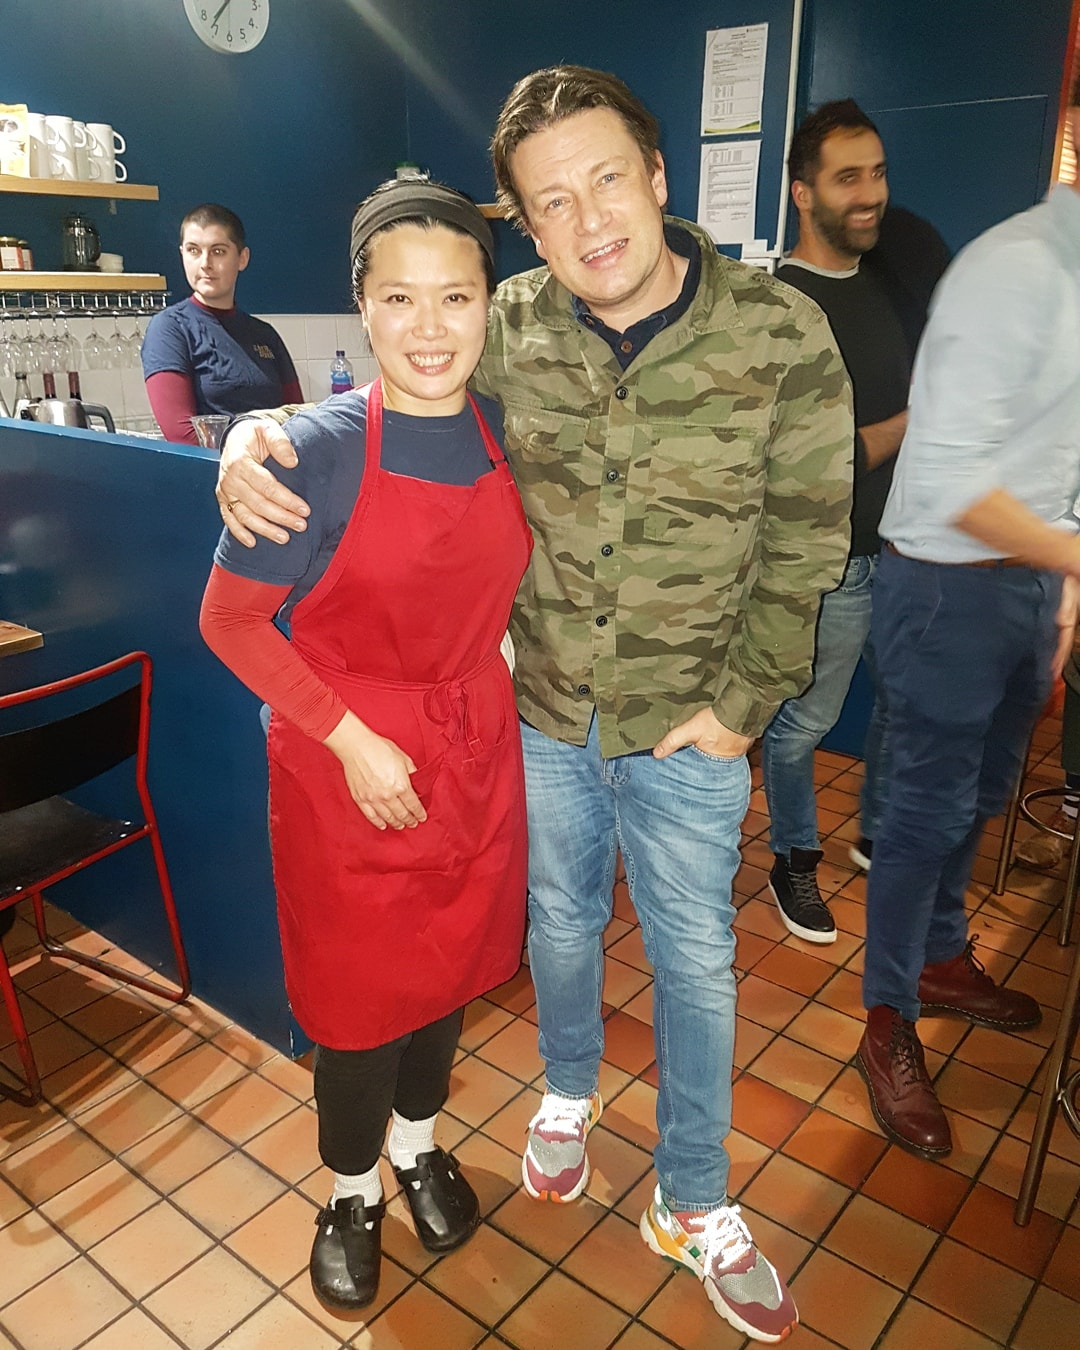 Mandy Yin of Sambal Shiok and Jamie Oliver, together at the restaurant on Holloway Road in Islington